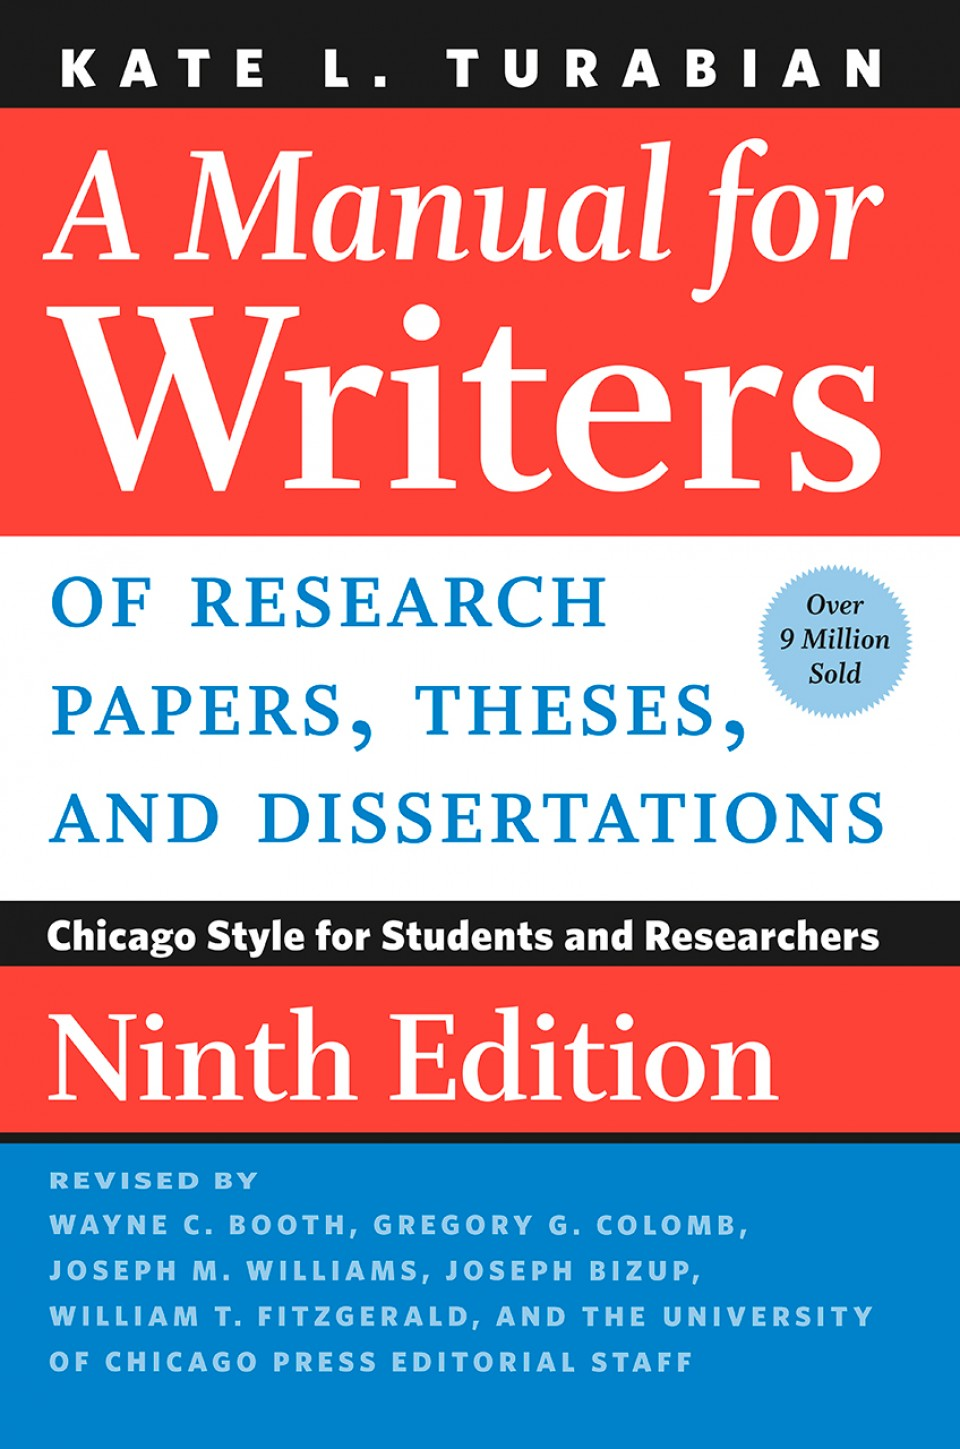 001 Manual For Writers Of Researchs Theses And Dissertations Sensational A Research Papers 8th Edition Pdf Eighth 960